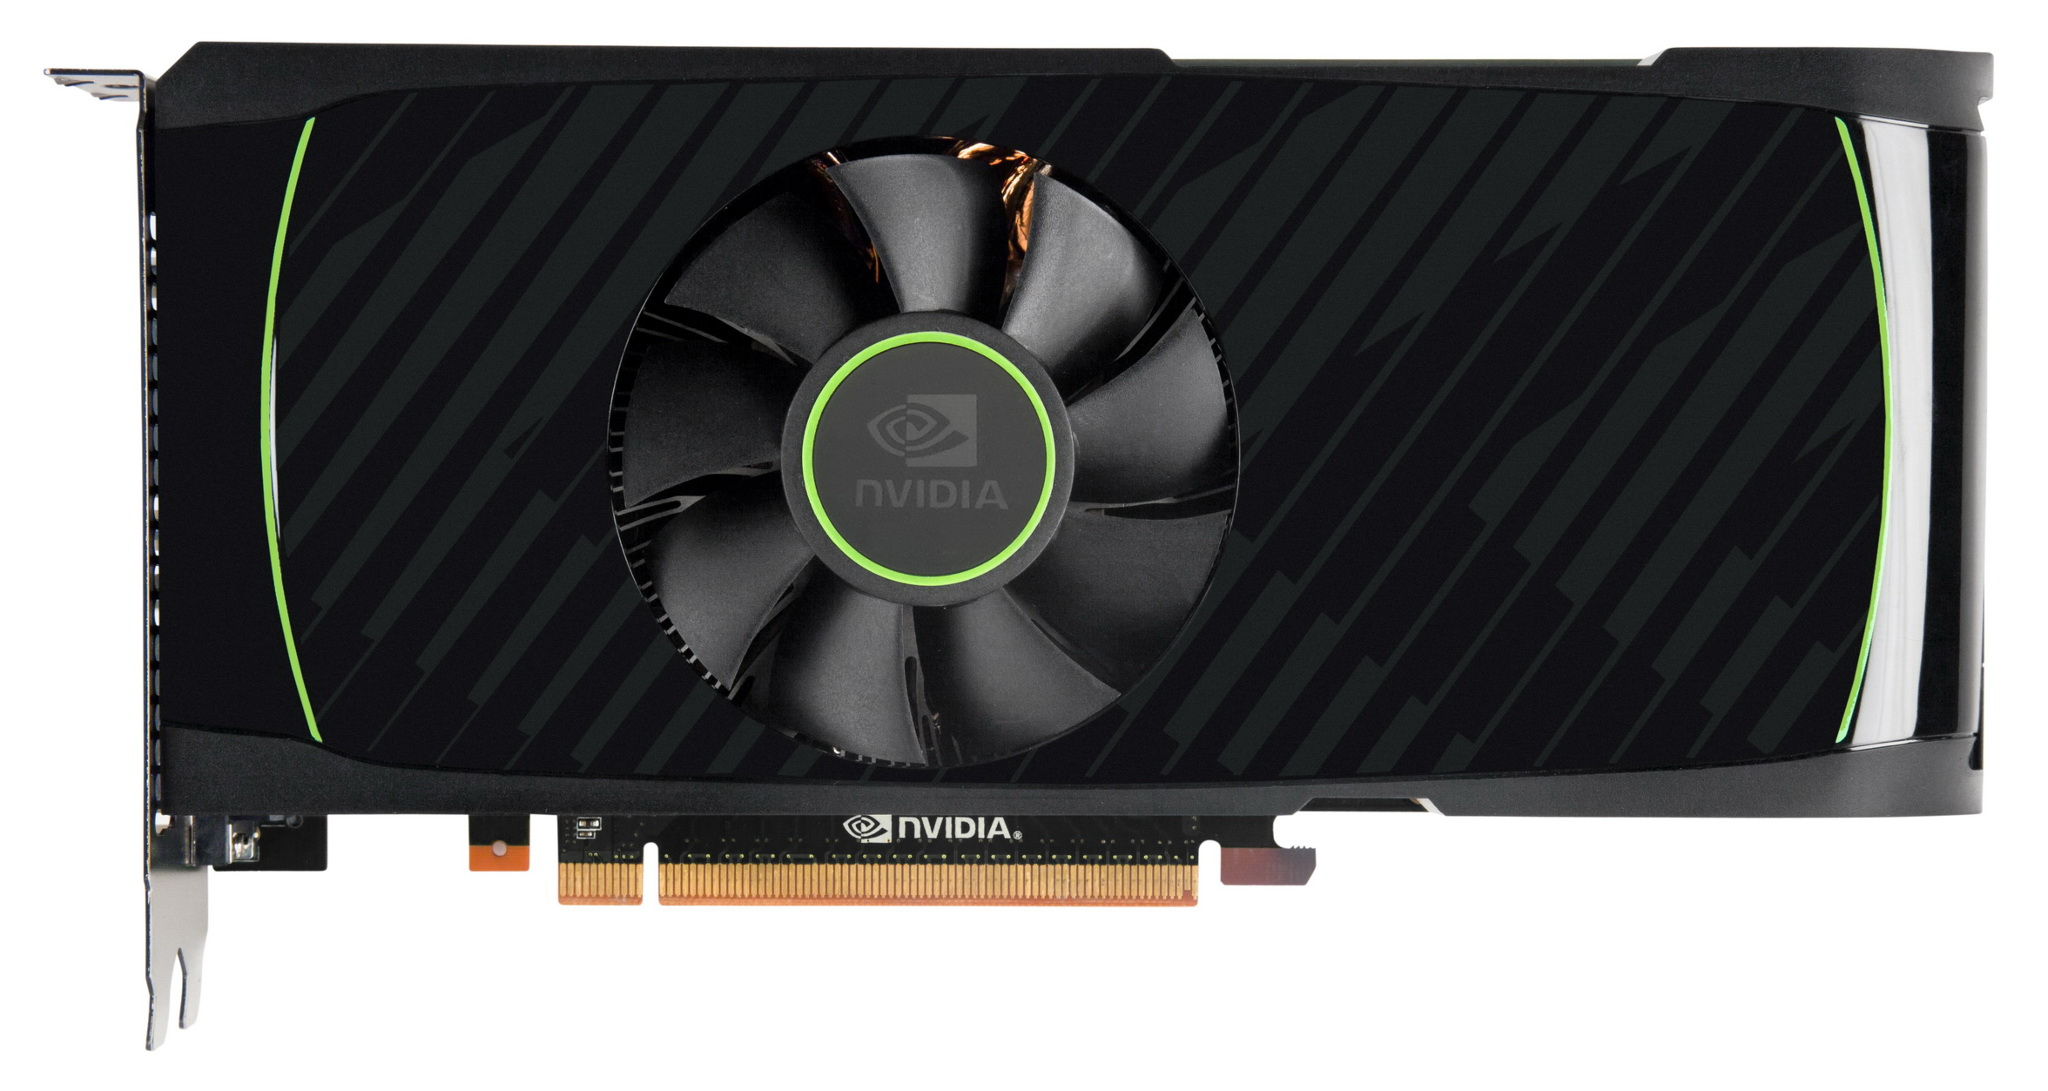 nvidia geforce 3d essay For $200, roughly the cost of a home gaming console, nvidia's geforce 6600 gt card should provide adequate performance in older 3d games, and it will let you play the newer titles, provided you're .